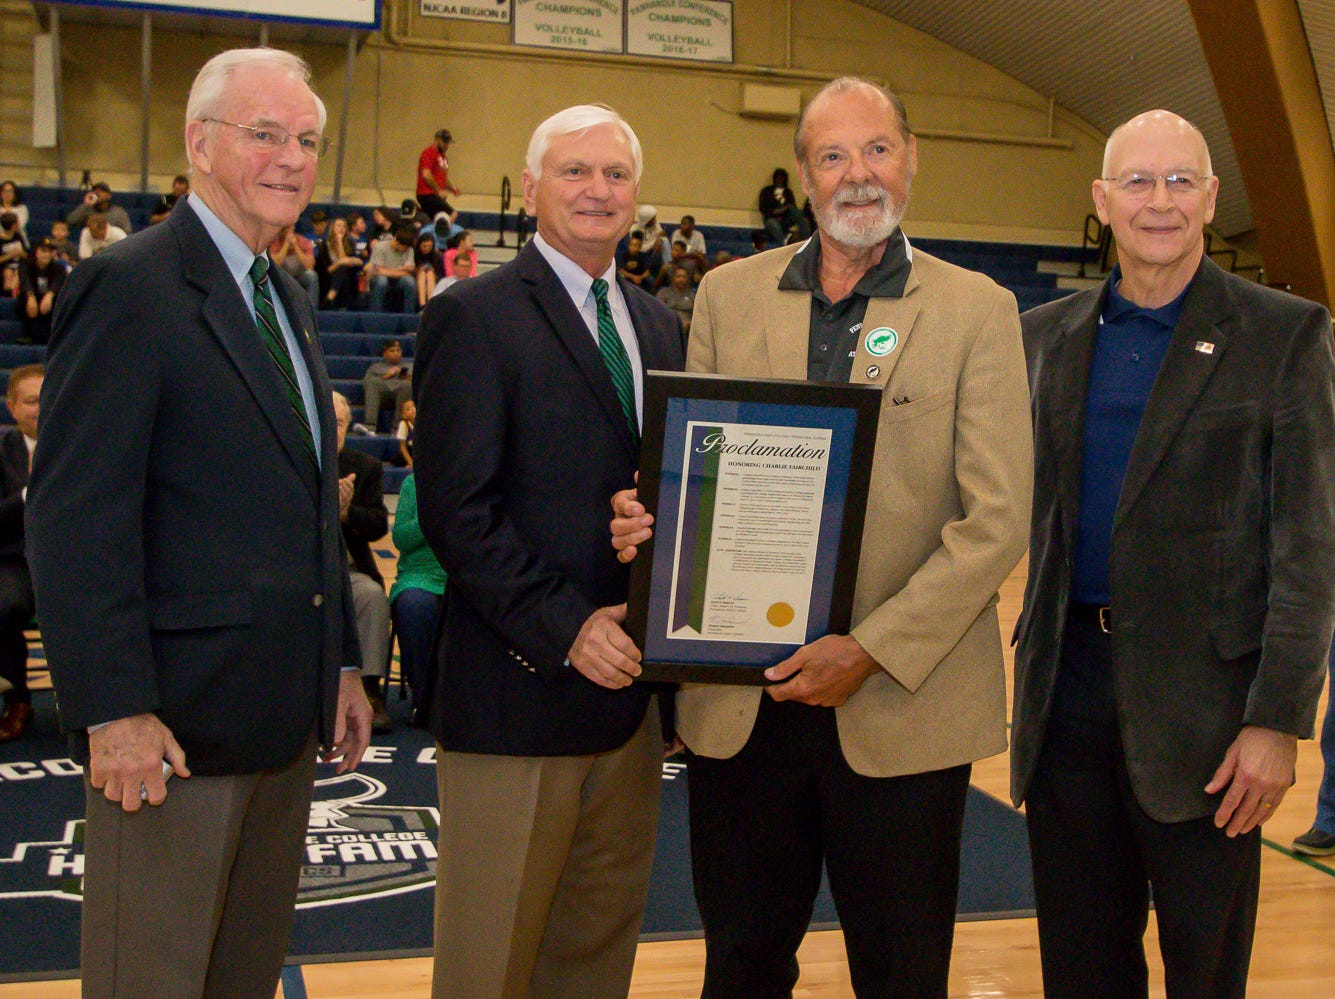 Charles Fairchild, second from right, is honored during Pensacola State College's inaugural Athletics Hall of Fame induction ceremony on Saturday, February 16, 2019, in the Hartsell Arena on the main campus. He was a member of the college's first state championship baksetball team during the 1962-63 season and helped bring a professional basketball team to Pensacola, the Continental Basketball Association's Pensacola Tornados, in the mid-1980's.